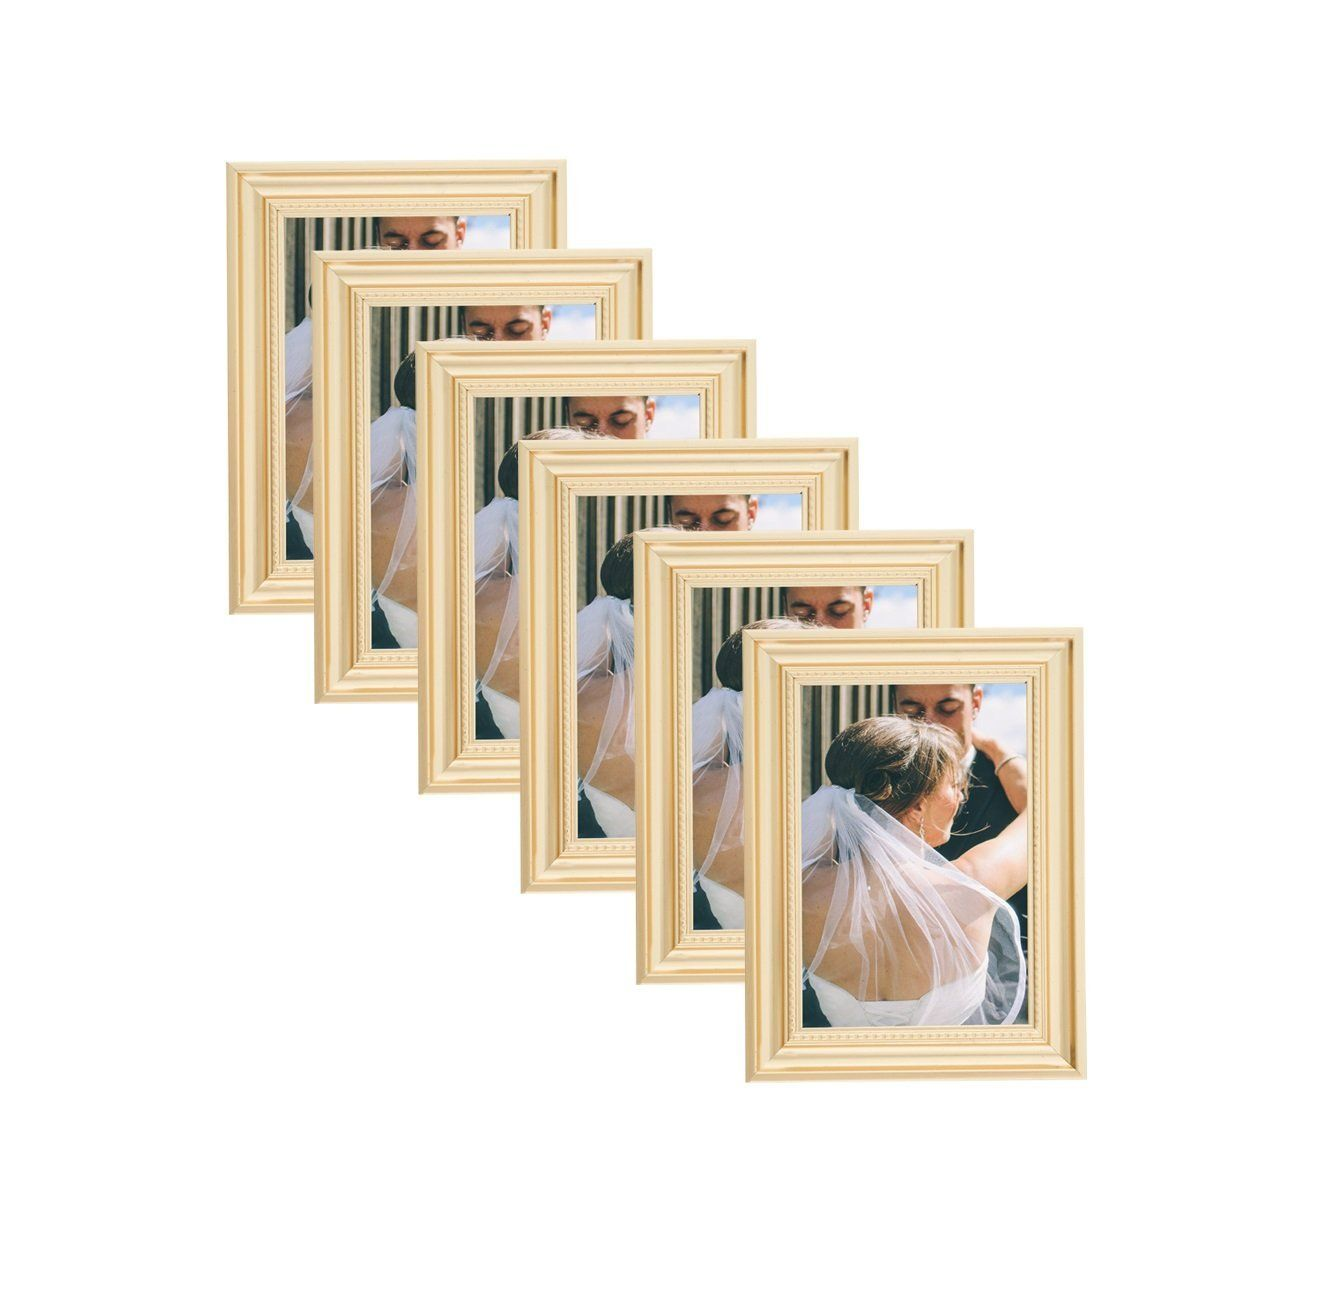 Elegant Beaded Gold Border Picture Frames 4x6 (6 pc) Display with ...